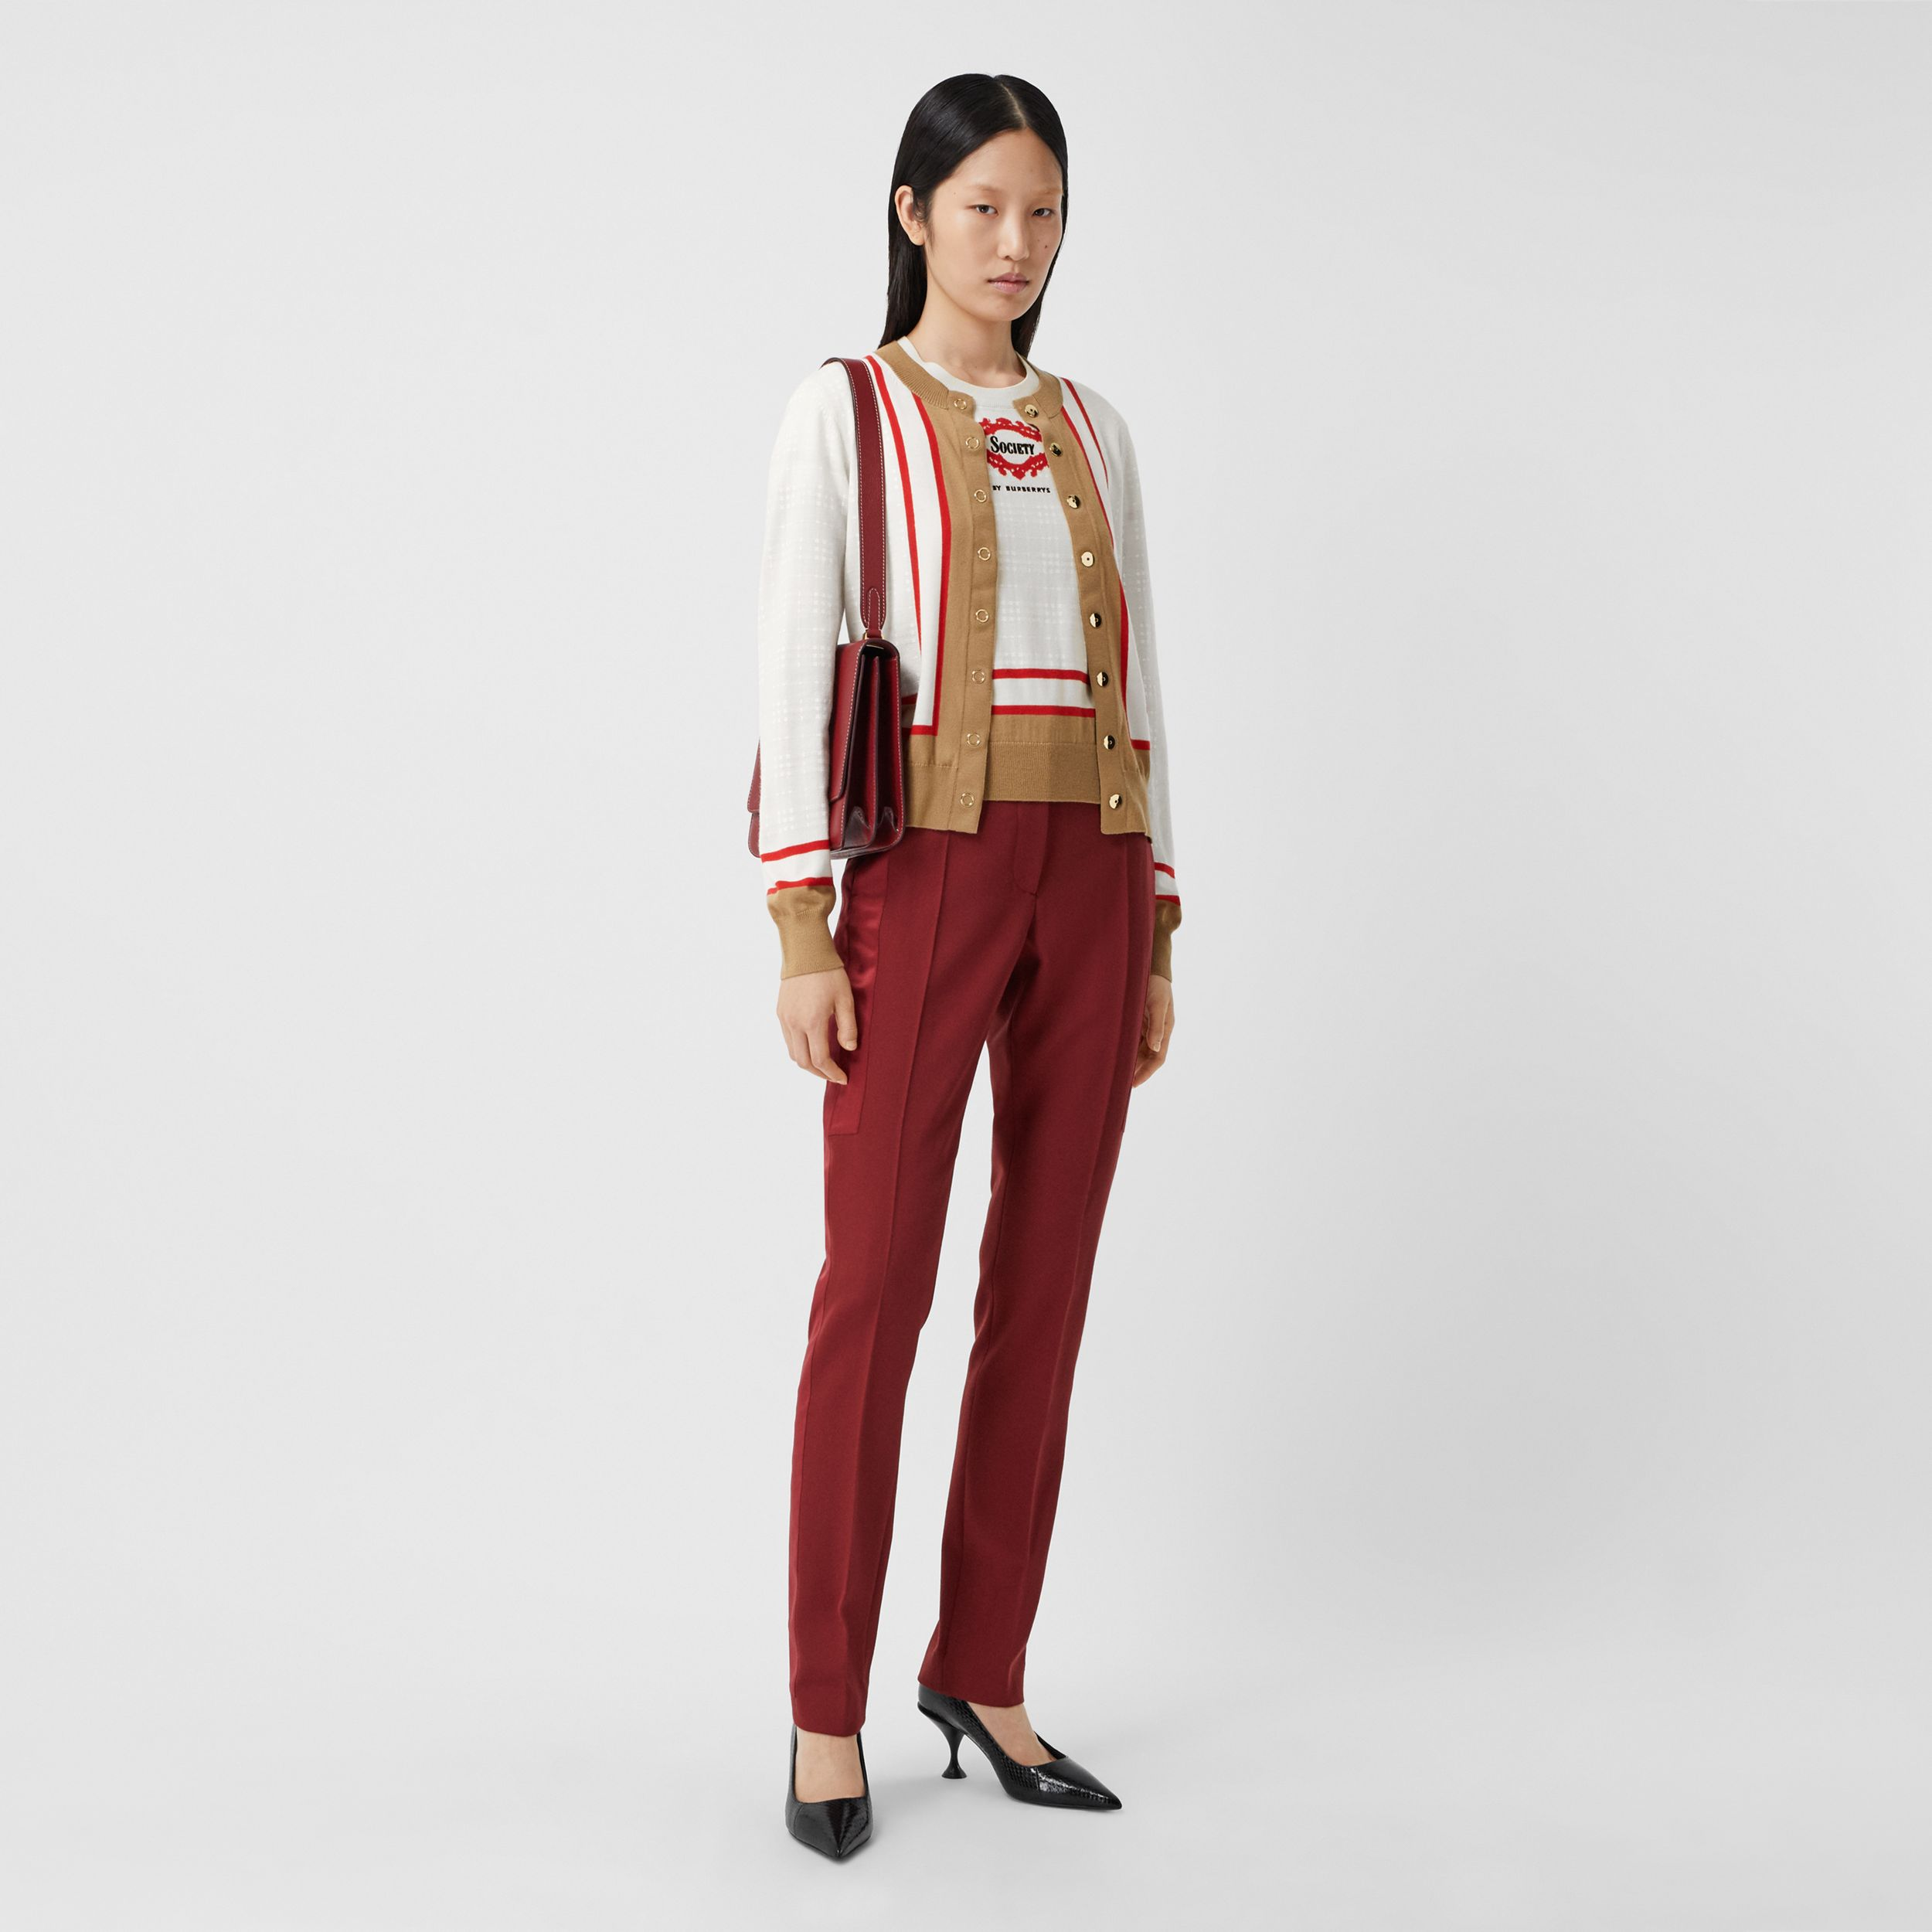 Archive Society Intarsia Wool Cardigan in White - Women | Burberry - 1